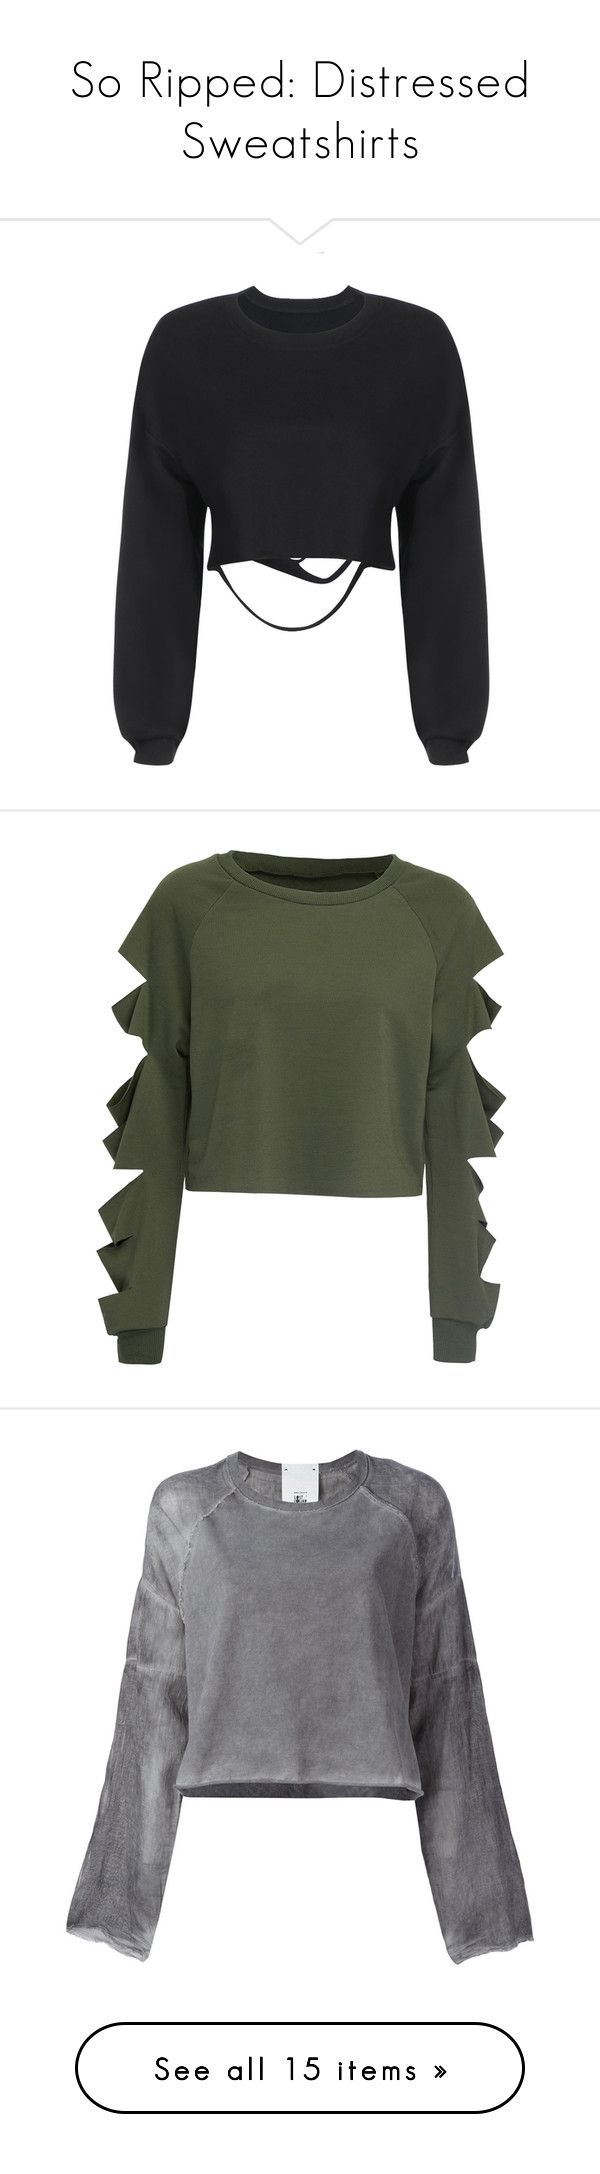 """""""So Ripped: Distressed Sweatshirts"""" by polyvore-editorial ❤ liked on Polyvore featuring distressedsweatshirts, tops, hoodies, sweatshirts, shirts, black, sweaters, yoins, ripped shirt and distressed sweatshirt"""